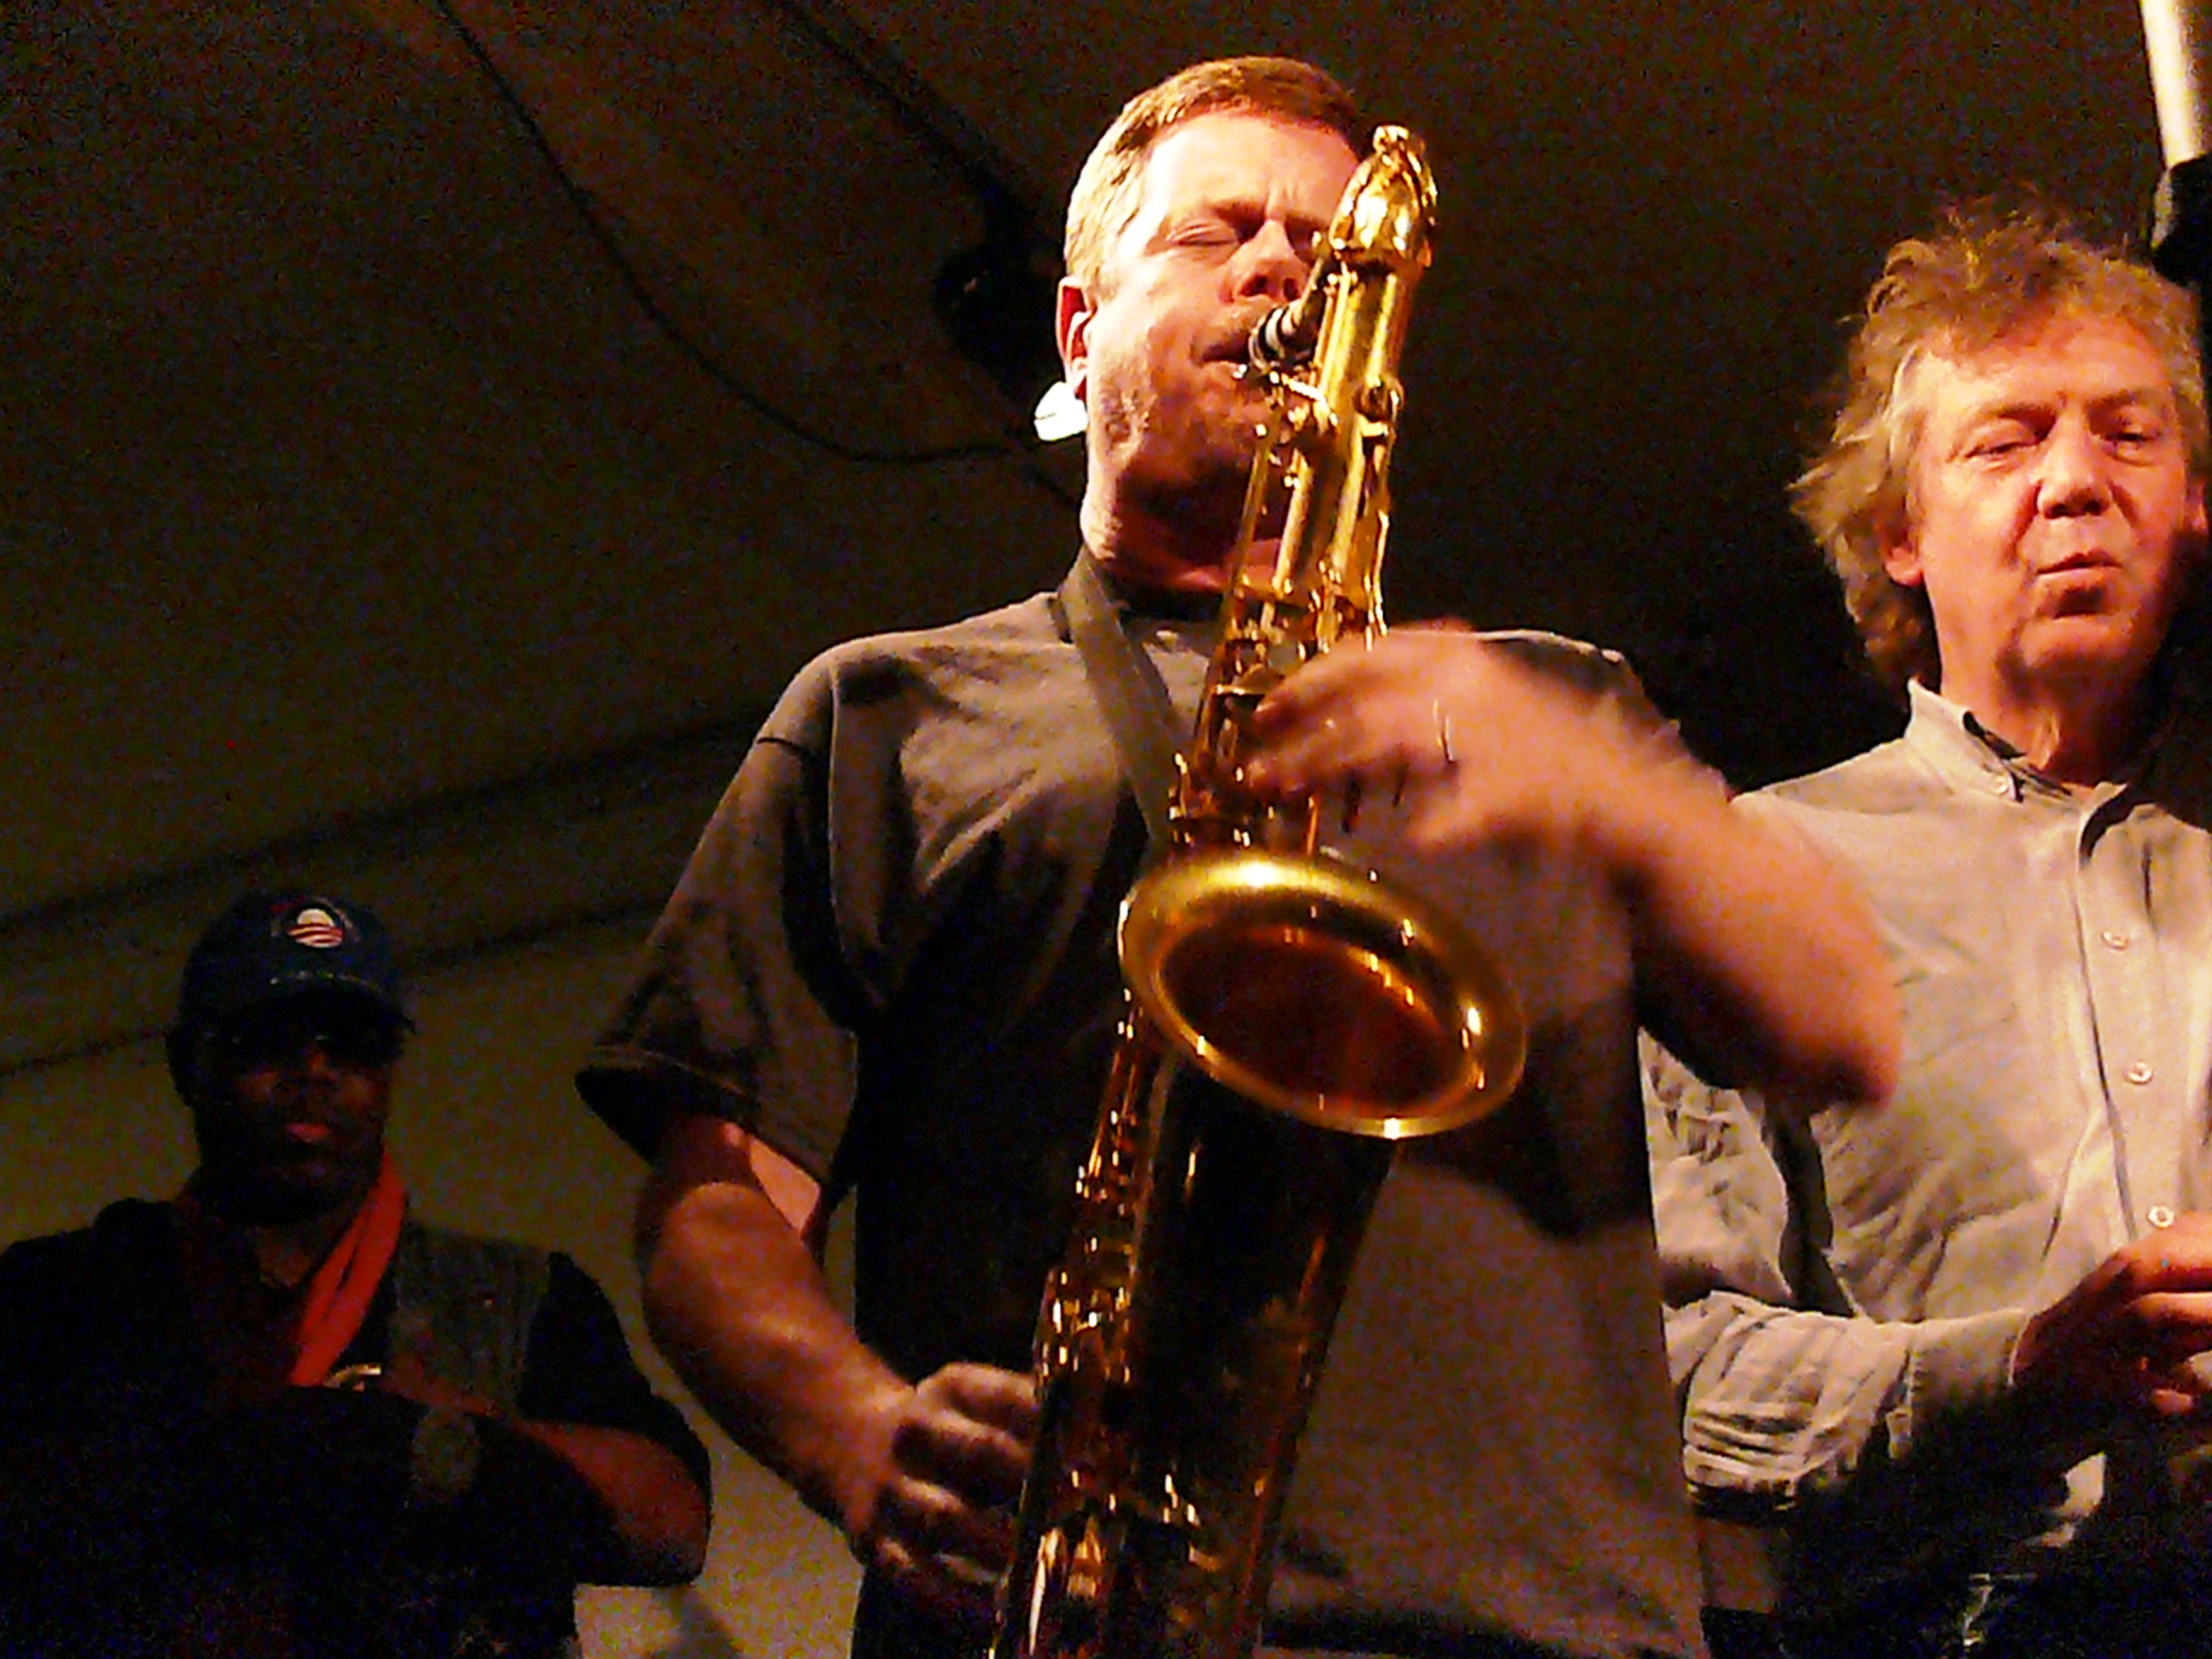 Joe McPhee, Ken Vandermark and Johannes Bauer at Cafe Oto, London in November 2012